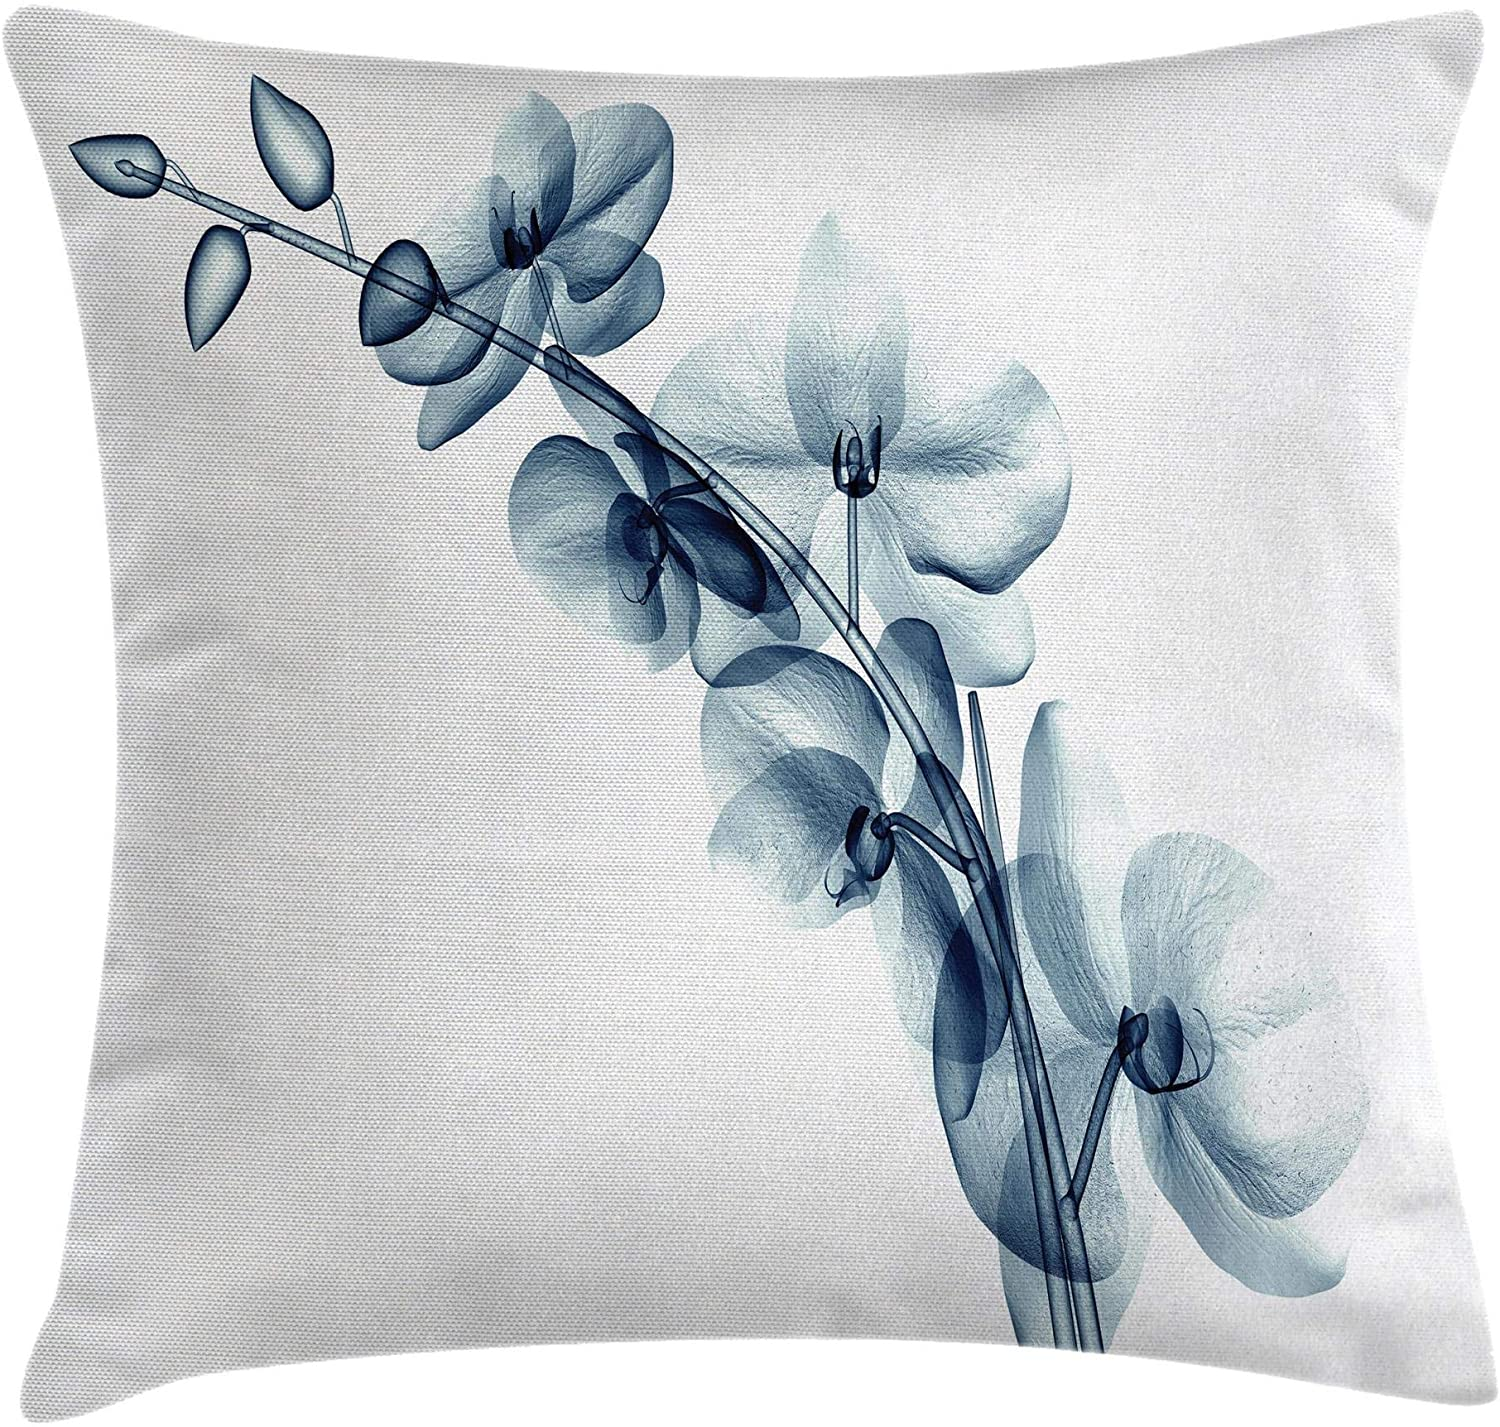 Ambesonne Flower Throw Pillow Cushion Cover, Contemporary X-ray Illustration of Orchide Flower Unseen Nature Picture, Decorative Square Accent Pillow Case, 18